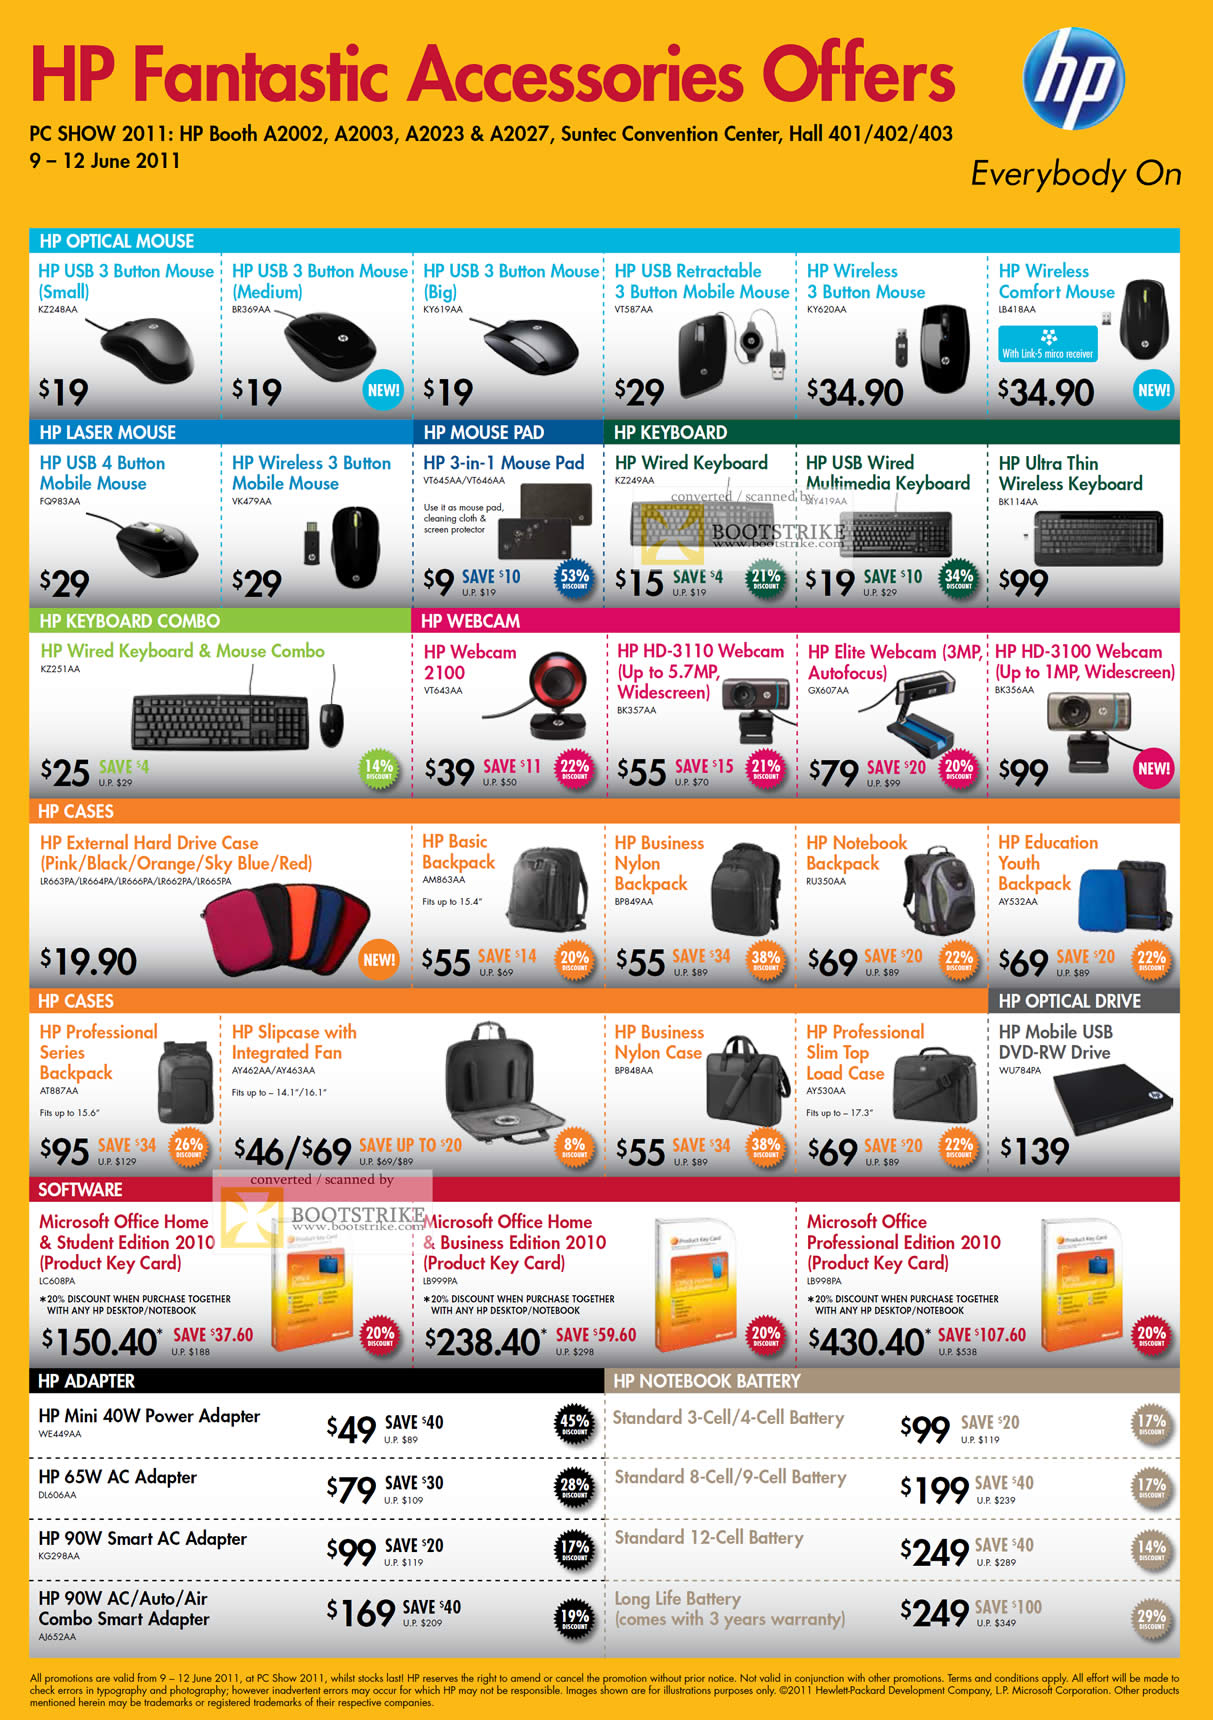 PC Show 2011 price list image brochure of HP Accessories Mouse Keyboard Wireless Comfort Webcam Case Backpack DVD-RW External Microsoft Office Home Business Professional Power Adapter Notebook Battery